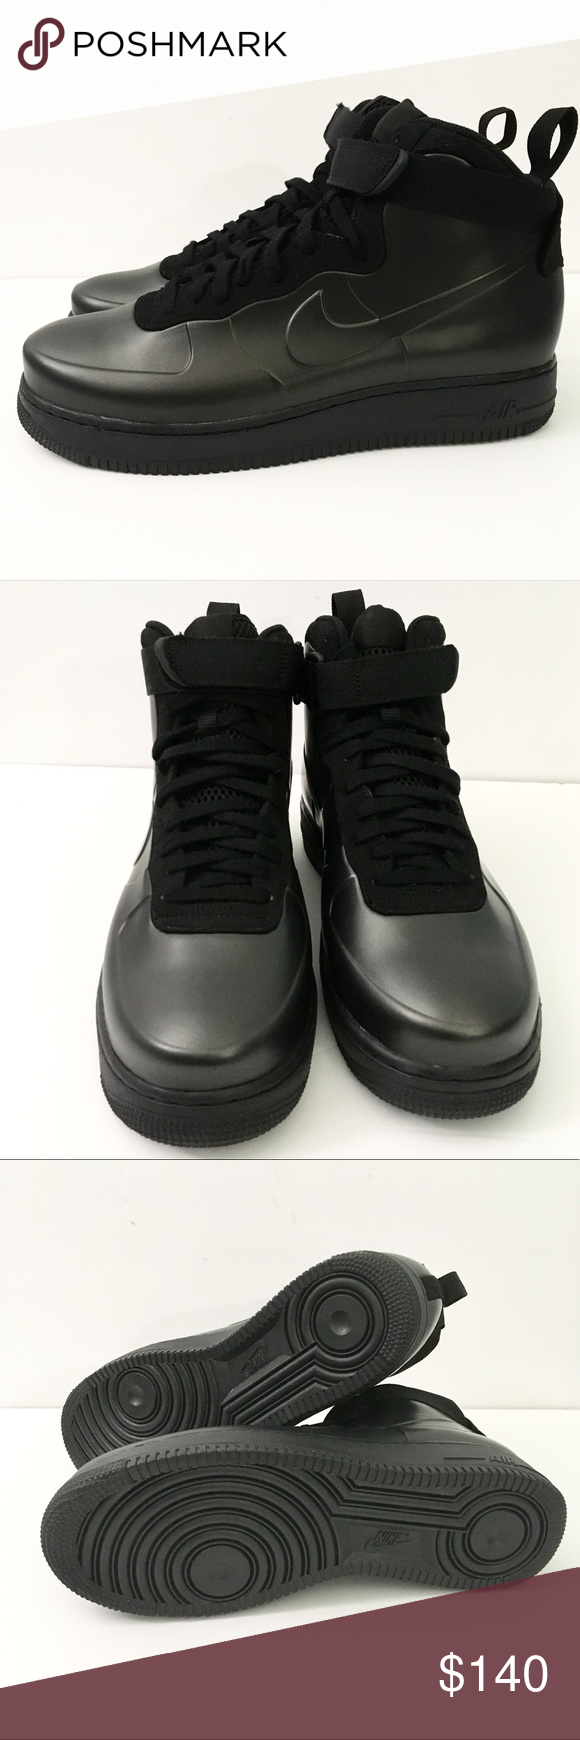 a817f53b63f82 Nike Air Force 1 One Foamposite Cup Triple Black Nike Air Force 1 One  Fiamposite Cup